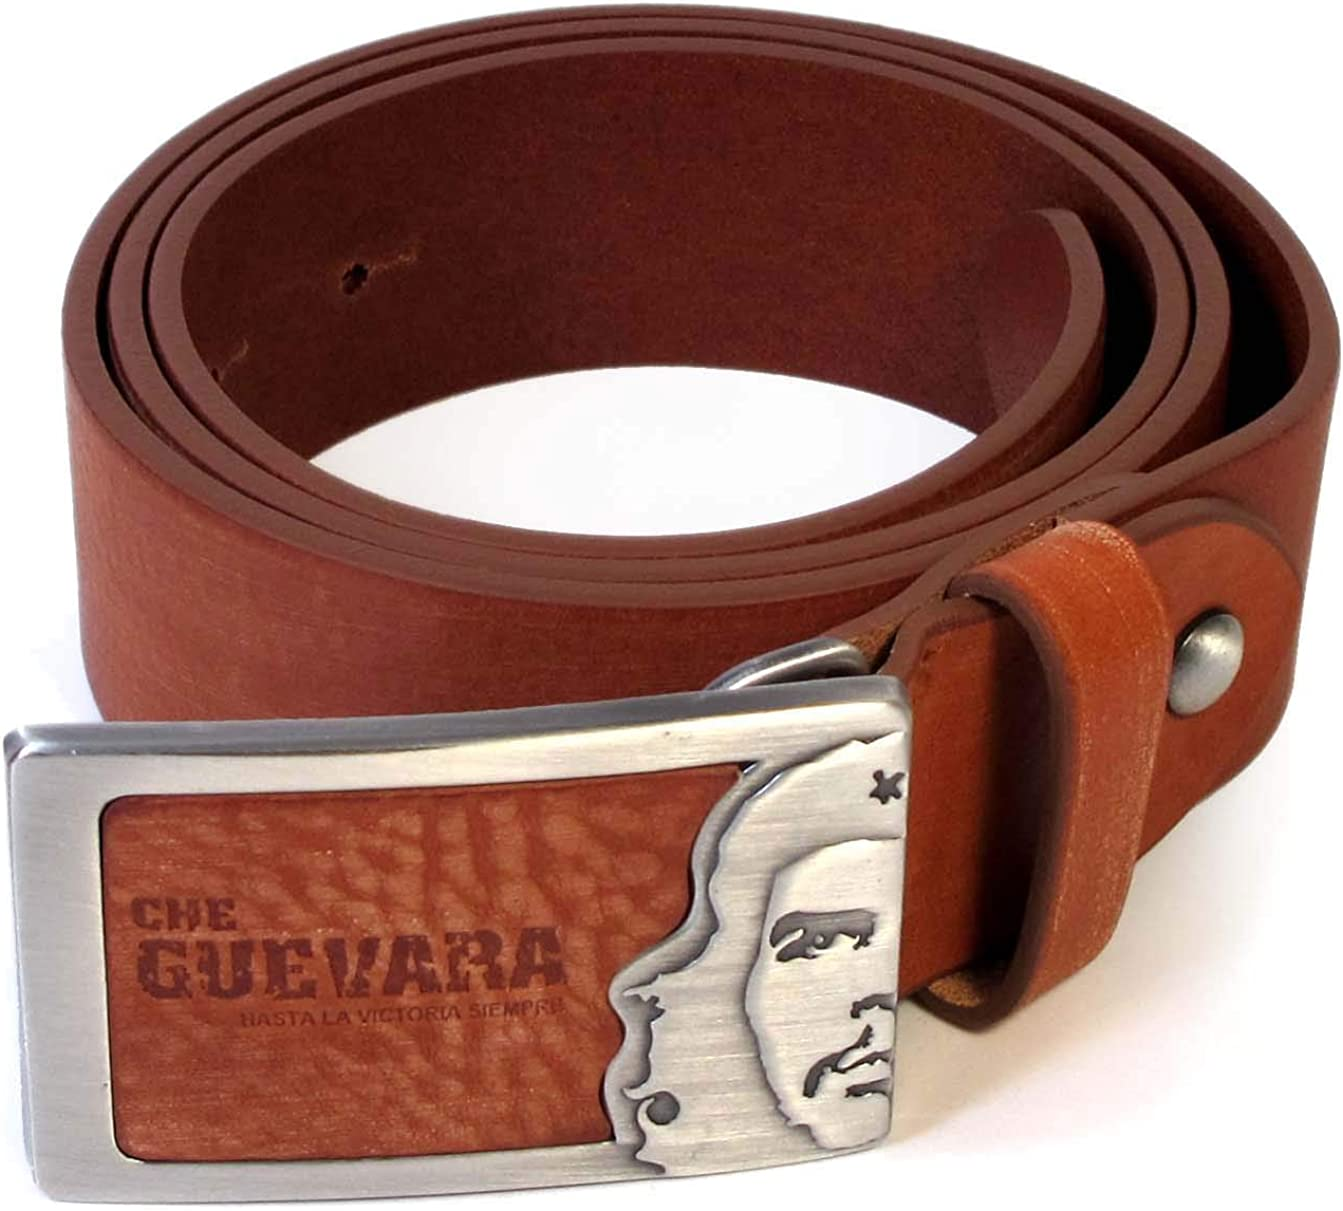 Mens Real Genuine Leather Belt Black Brown White 1.5 Wide S-L Casual Jeans TM3